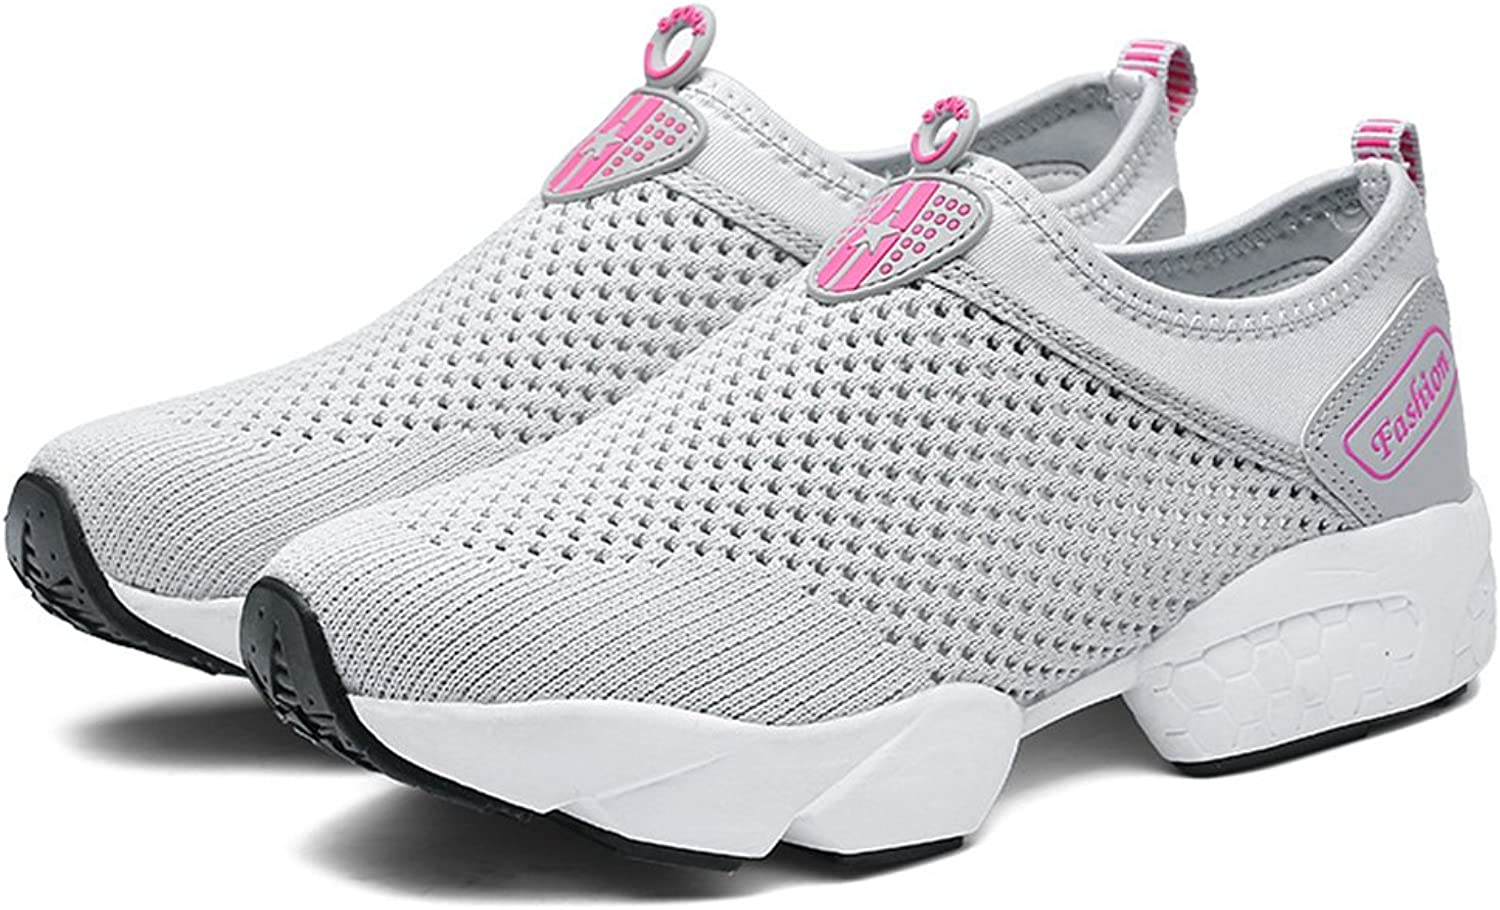 Pit4tk Womens Summer Breathable Mesh Lightweight Mesh Clog Quick Drying shoes Footwear Anti-Slip shoes